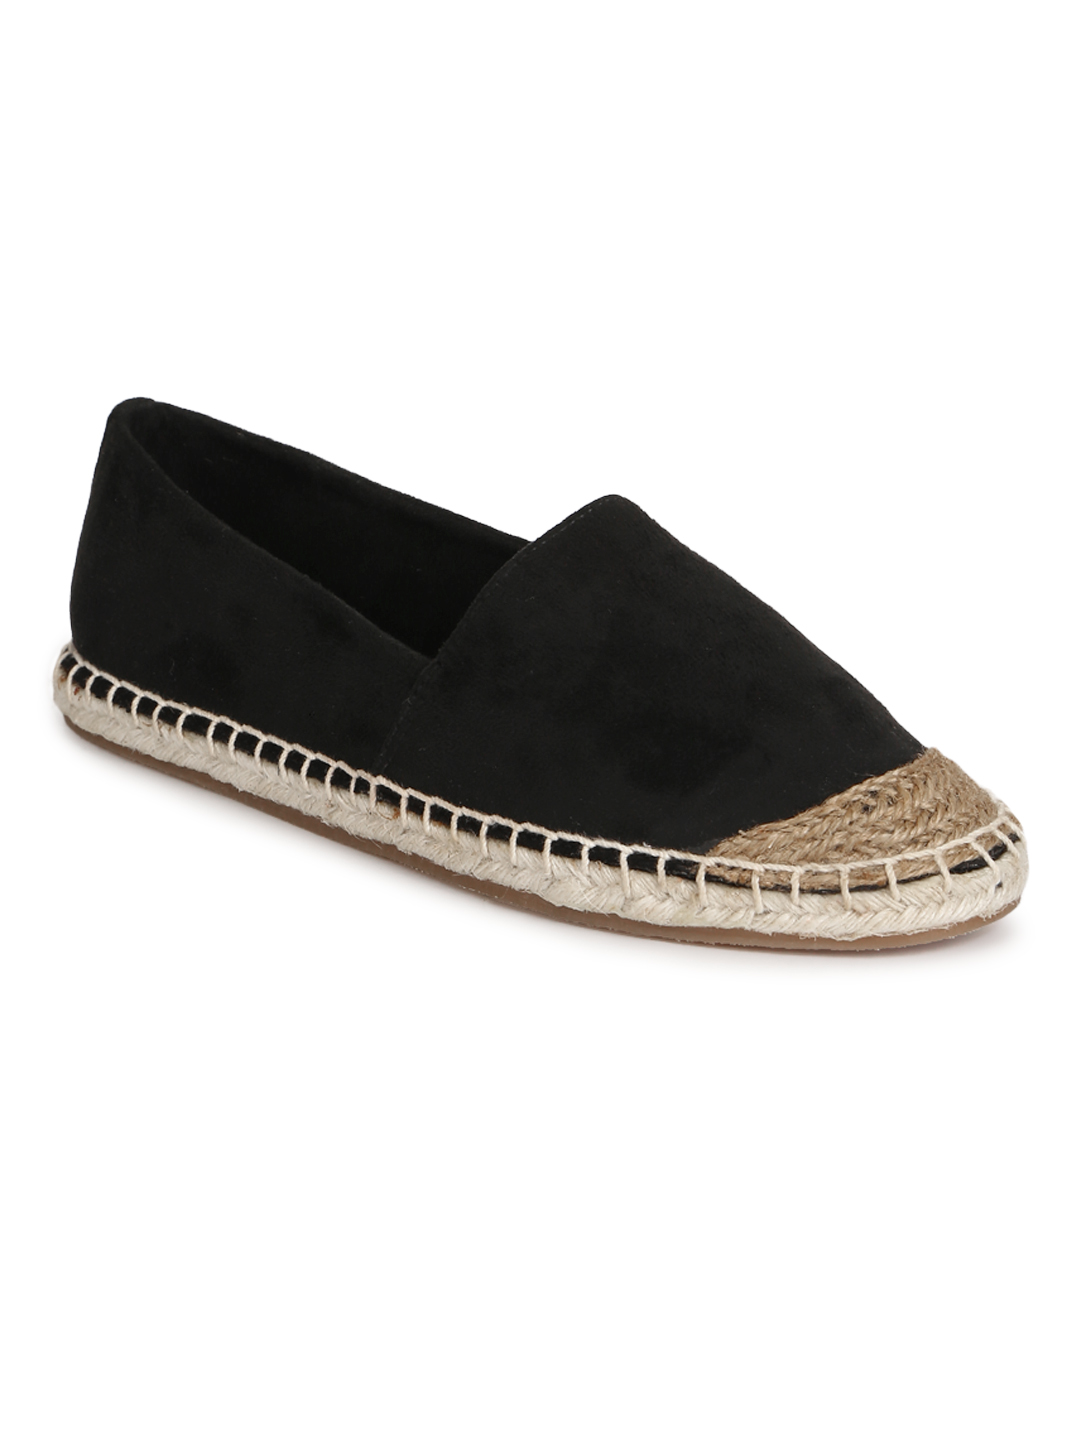 Truffle Collection   Truffle Collection Black Micro Slip On Shoes